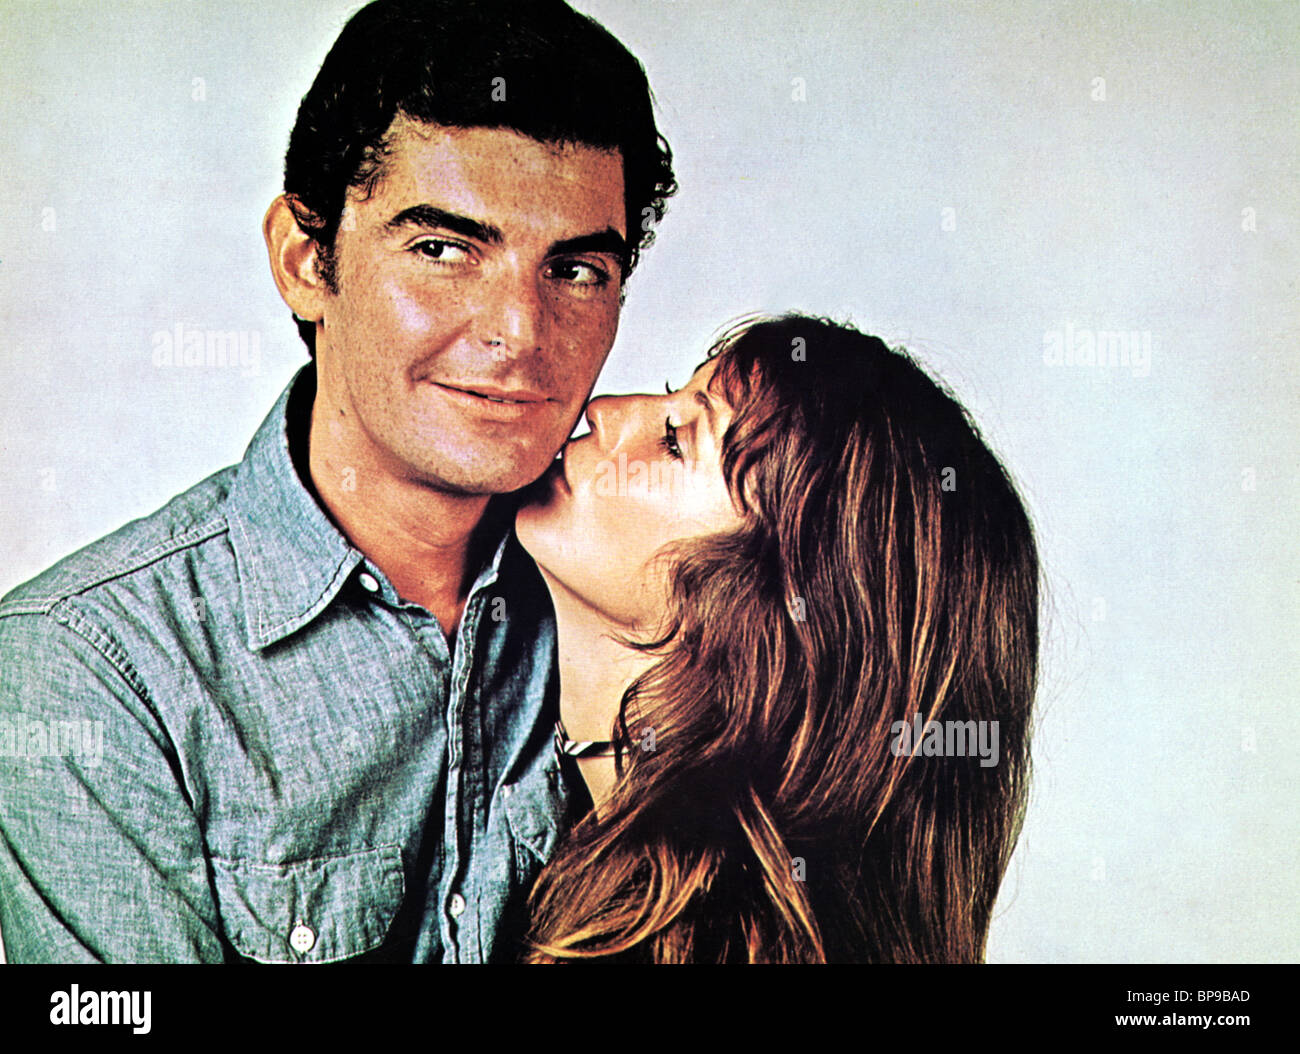 richard benjamin speckrichard benjamin and paula prentiss, richard benjamin harrison, richard benjamin west world, richard benjamin harrison wikipedia, richard benjamin, richard benjamin trust, richard benjamin vannacutt, richard benjamin harrison net worth, richard benjamin harrison dead, richard benjamin harrison murio, richard benjamin harrison muerte, richard benjamin harrison morreu, richard benjamin harrison joanne rhue harrison, richard benjamin net worth, richard benjamin speck, richard benjamin movies, richard benjamin harrison car collection, richard benjamin harrison jr, richard benjamin harrison house, richard benjamin harrison fortune